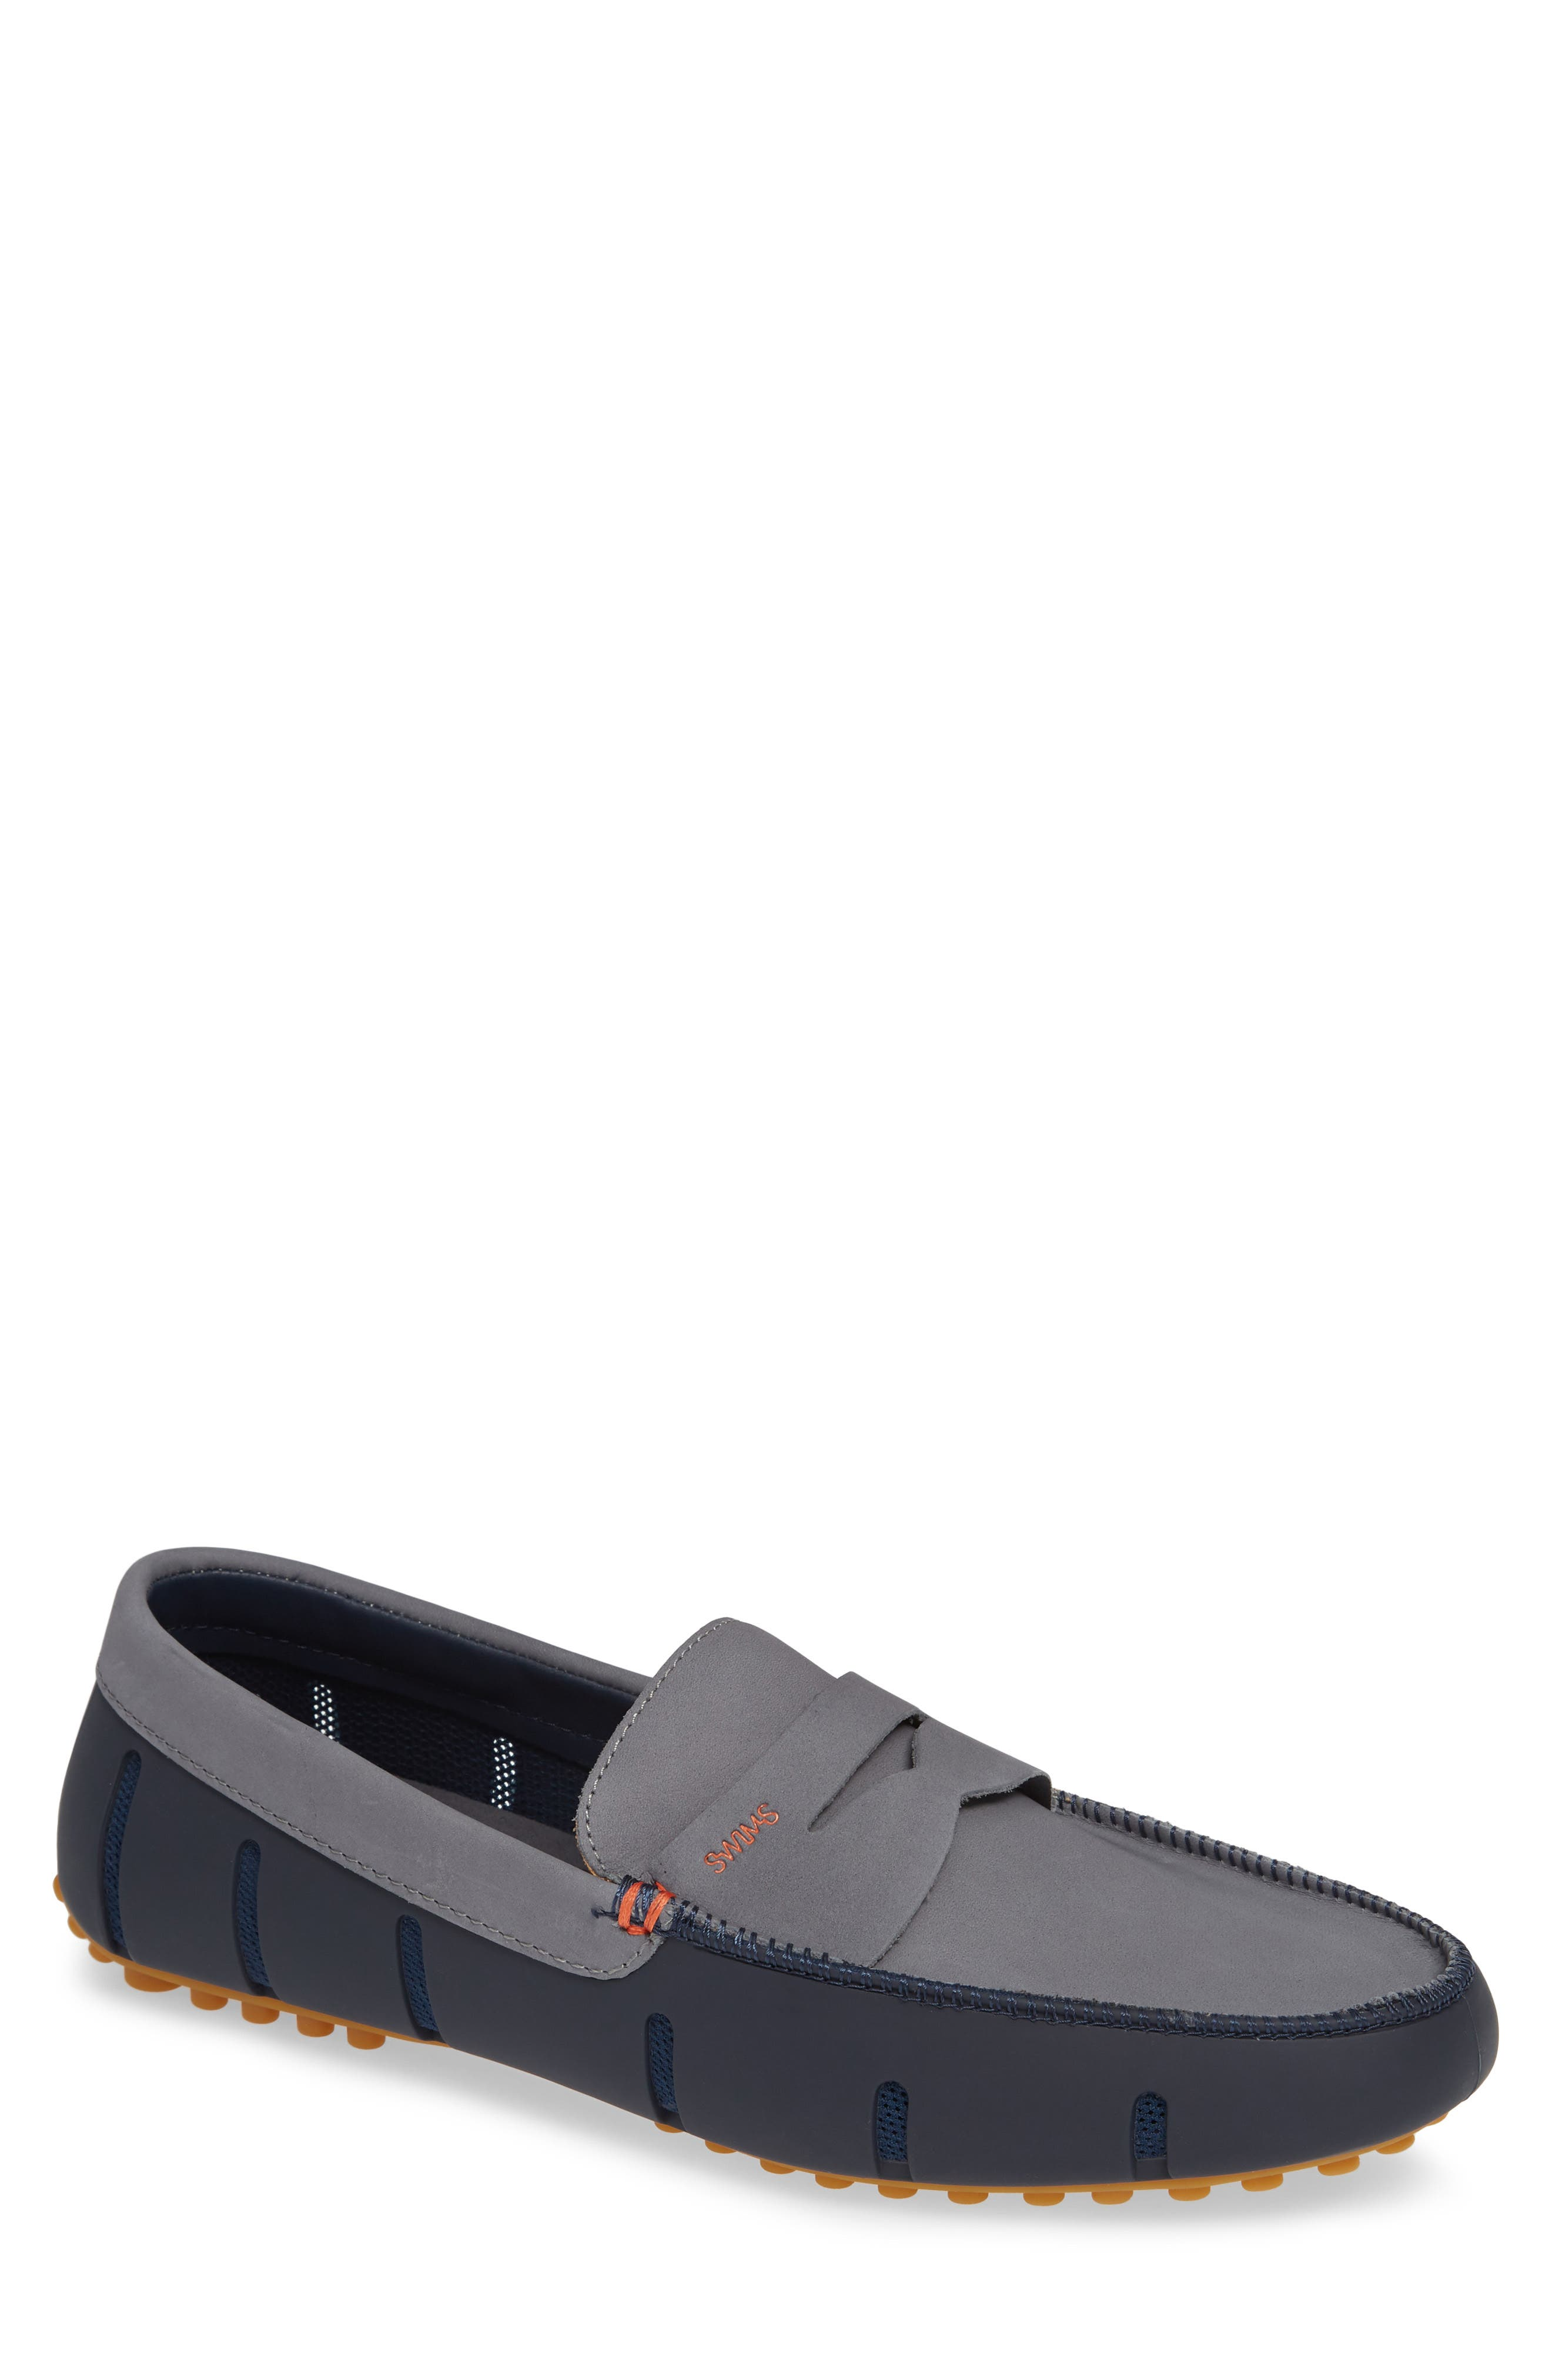 Lux Penny Loafer,                             Main thumbnail 1, color,                             NAVY/ GRAY/ GUM